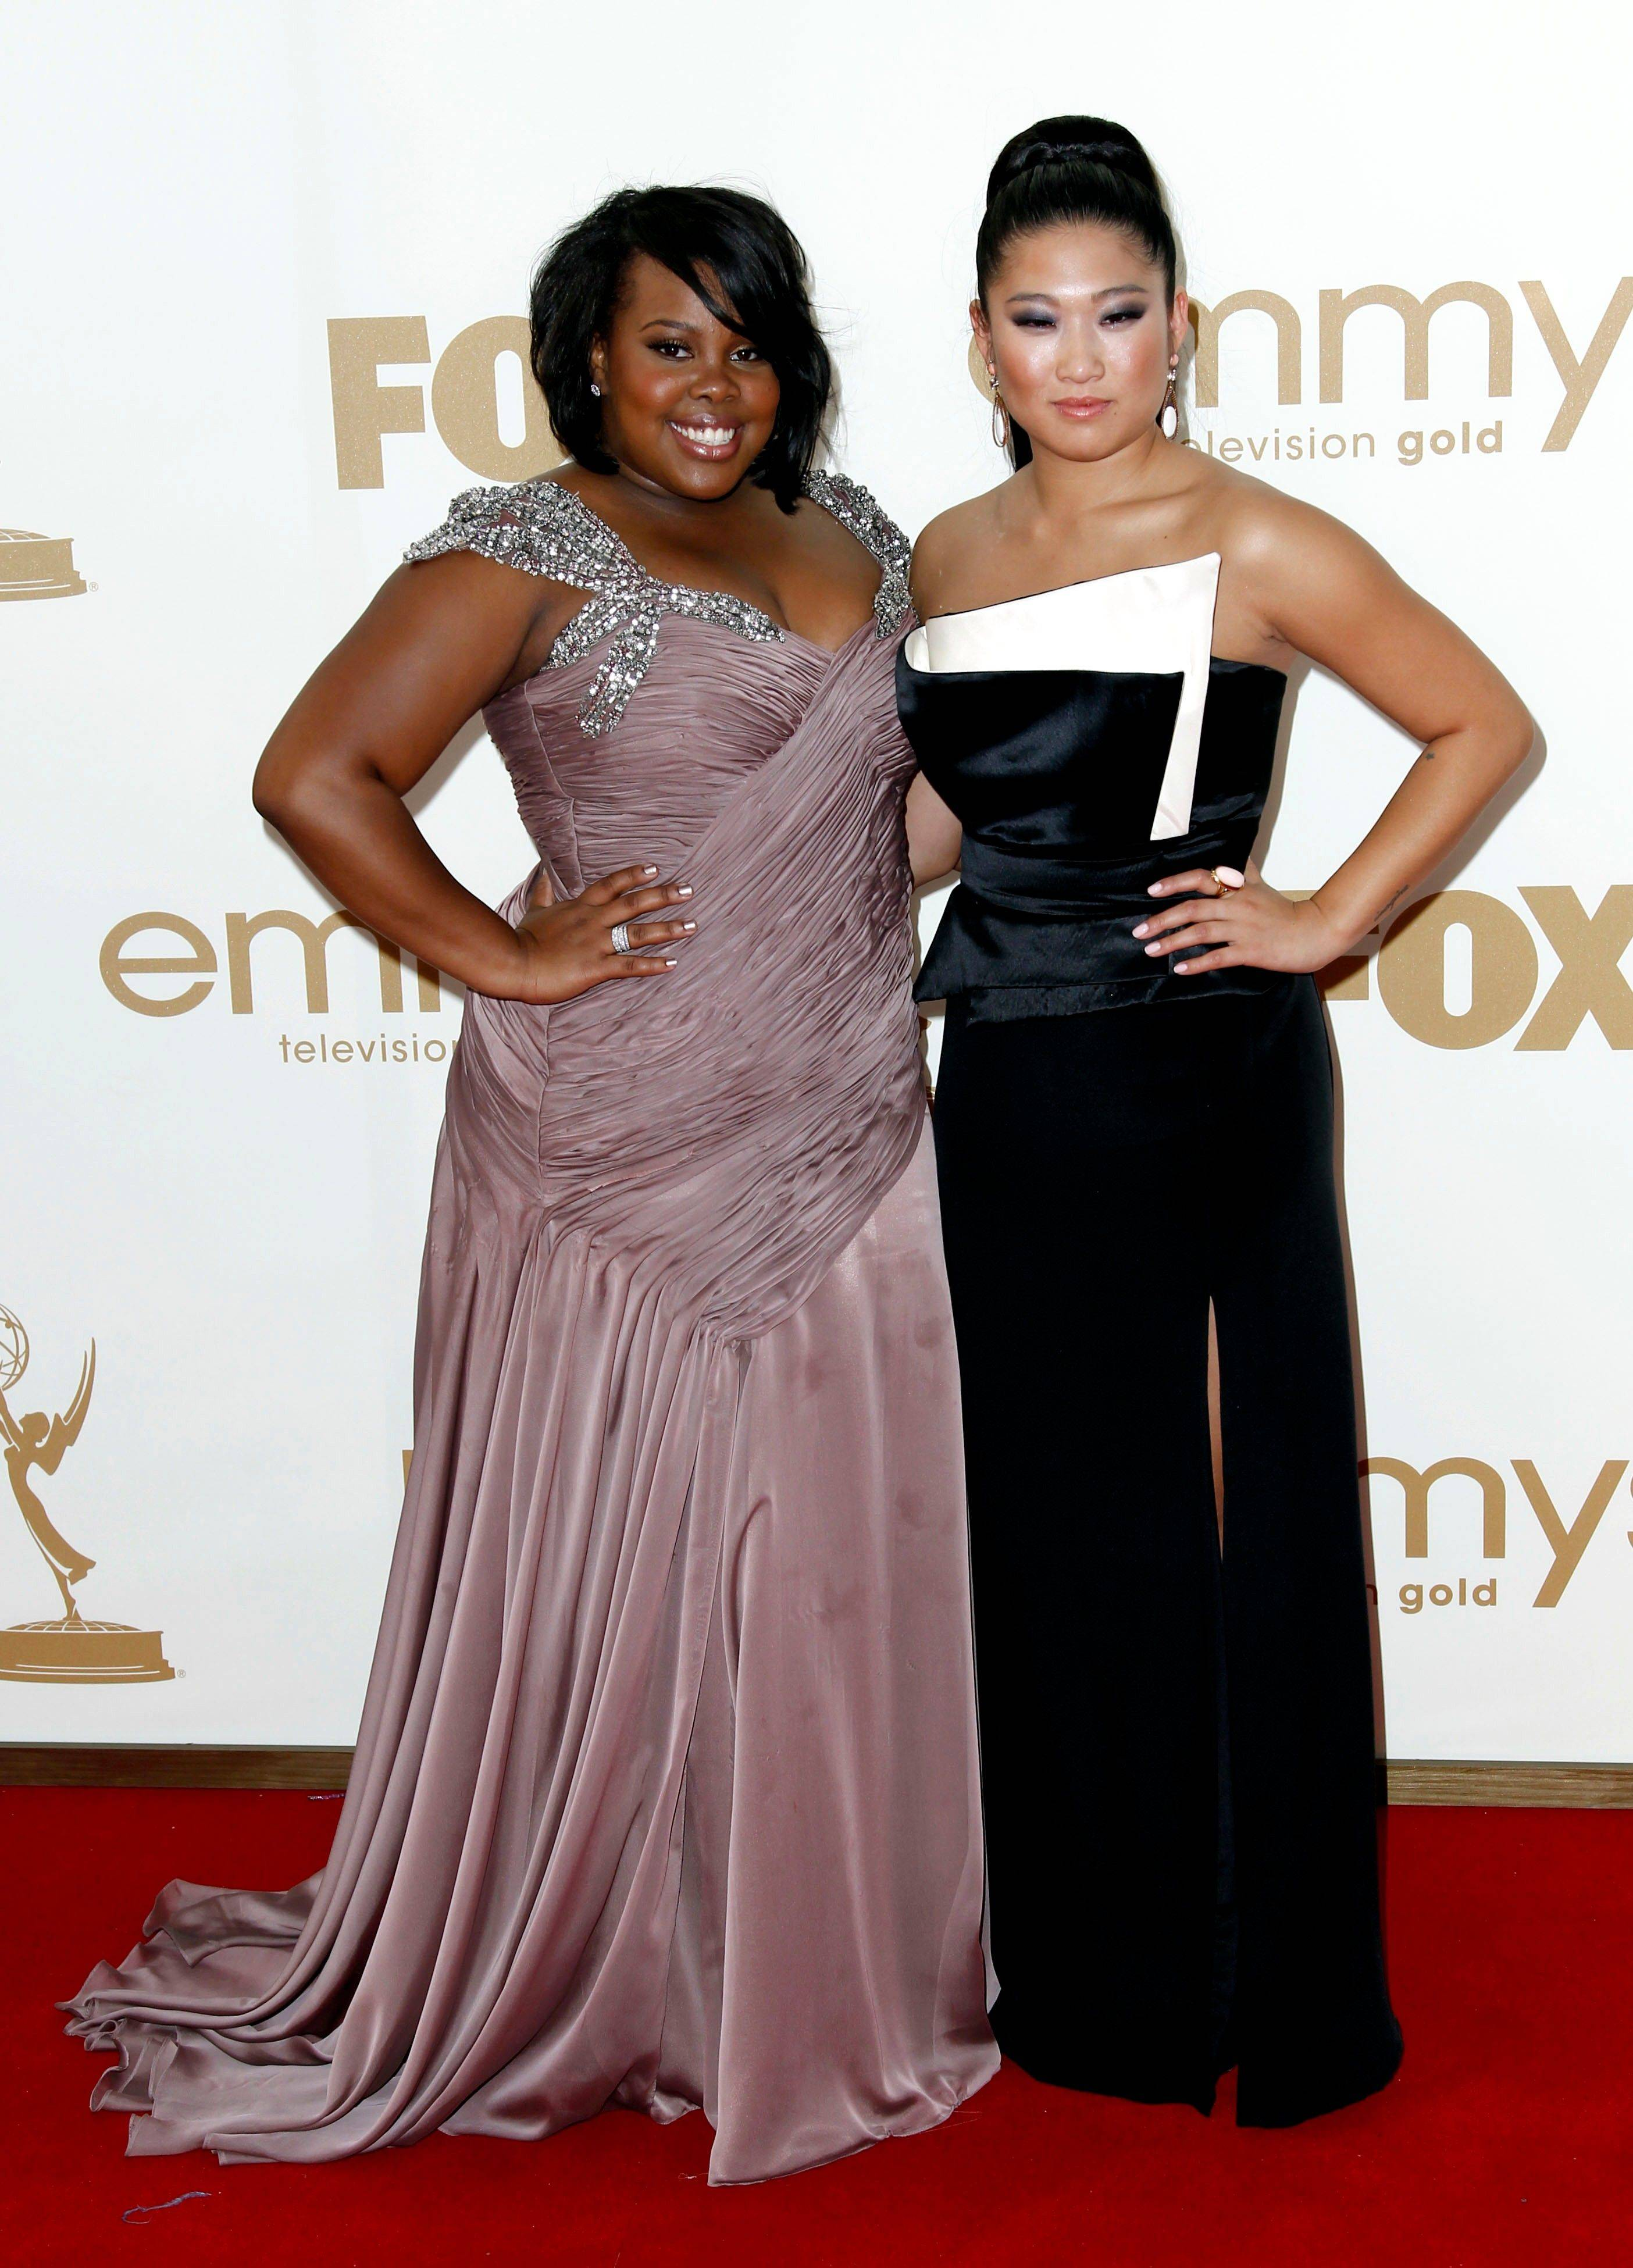 """Glee"" stars Amber Riley, left, and Jenna Ushkowitz look all grown up in their Emmy best."